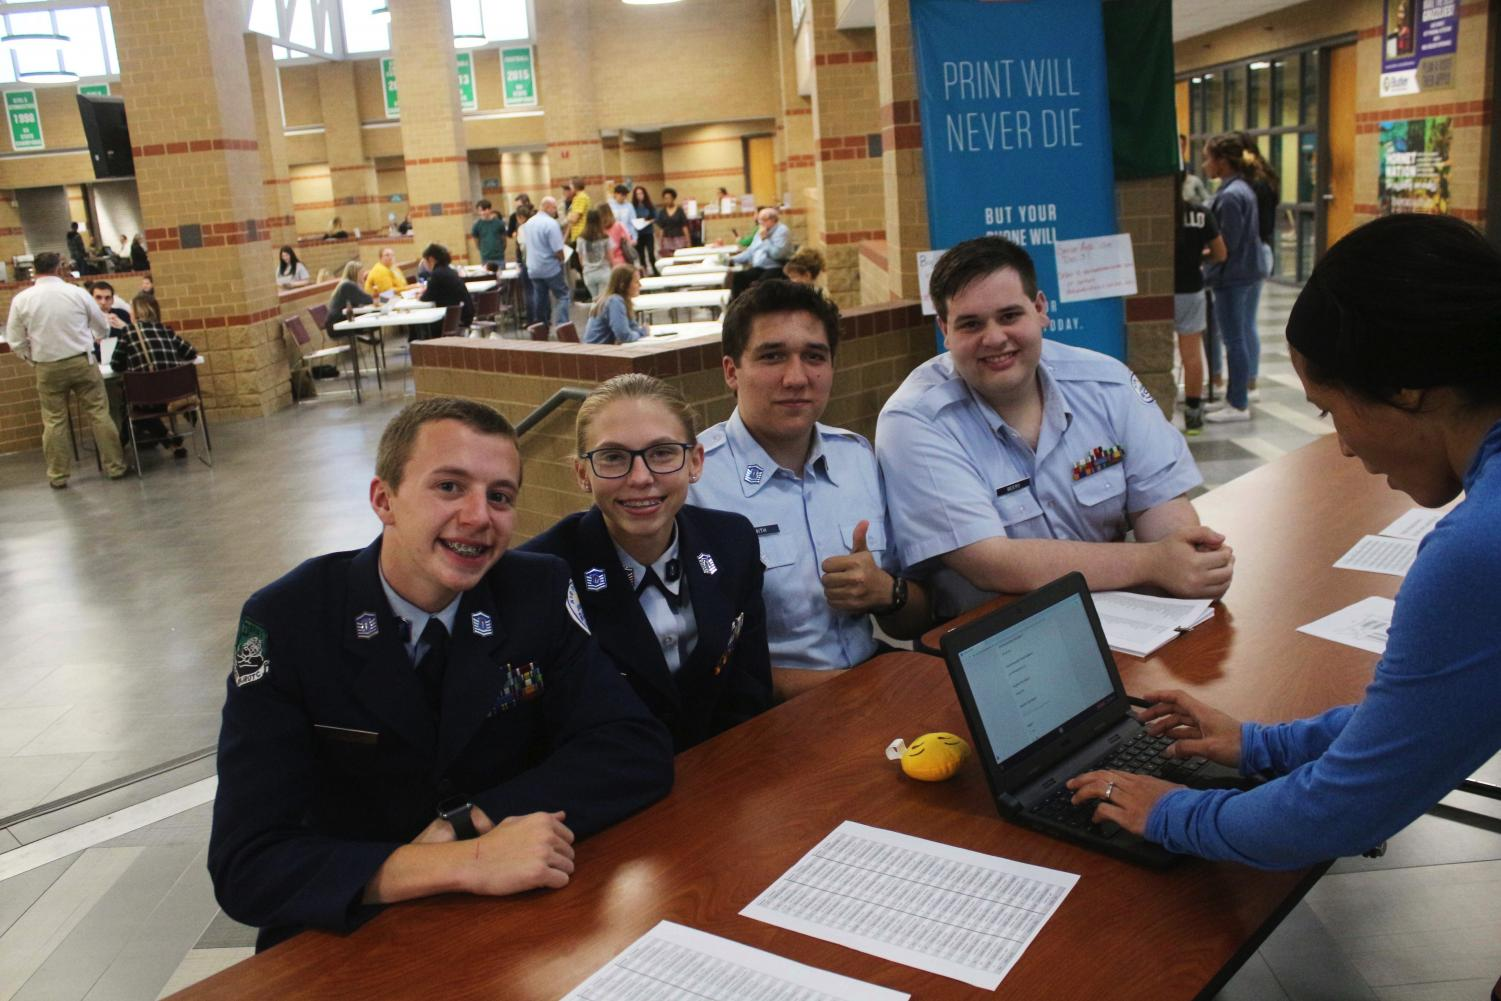 ROTC+volunteers+to+help+at+conferences+on+Oct.+21